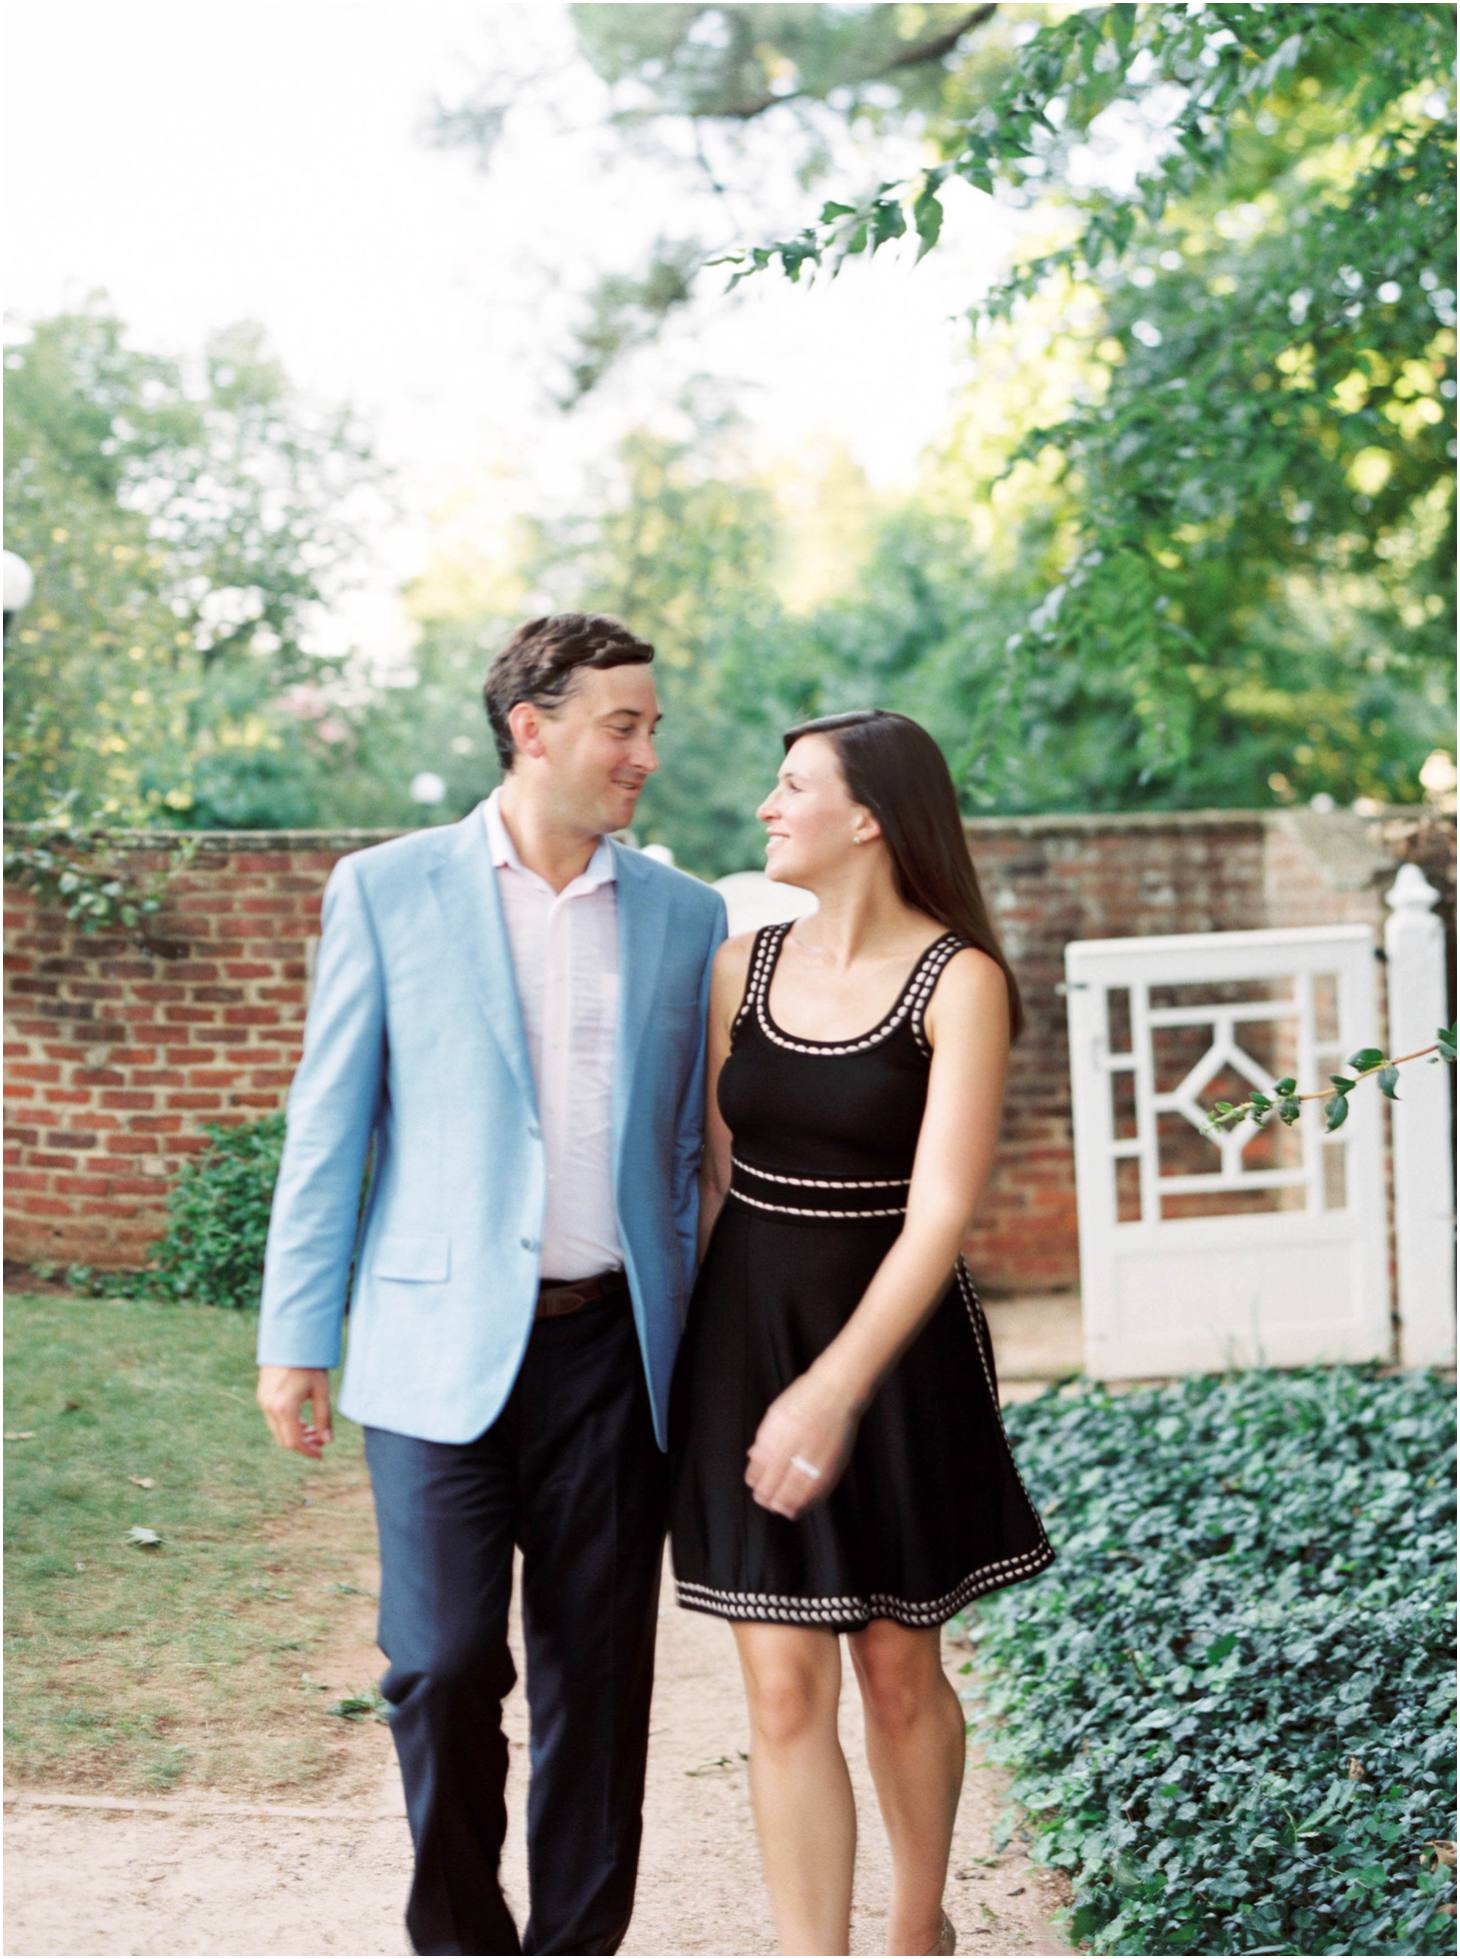 kim-stockwell-photography-fine-art-film-engagements-charlottesville-virginia-meghan-and-taylor_0847